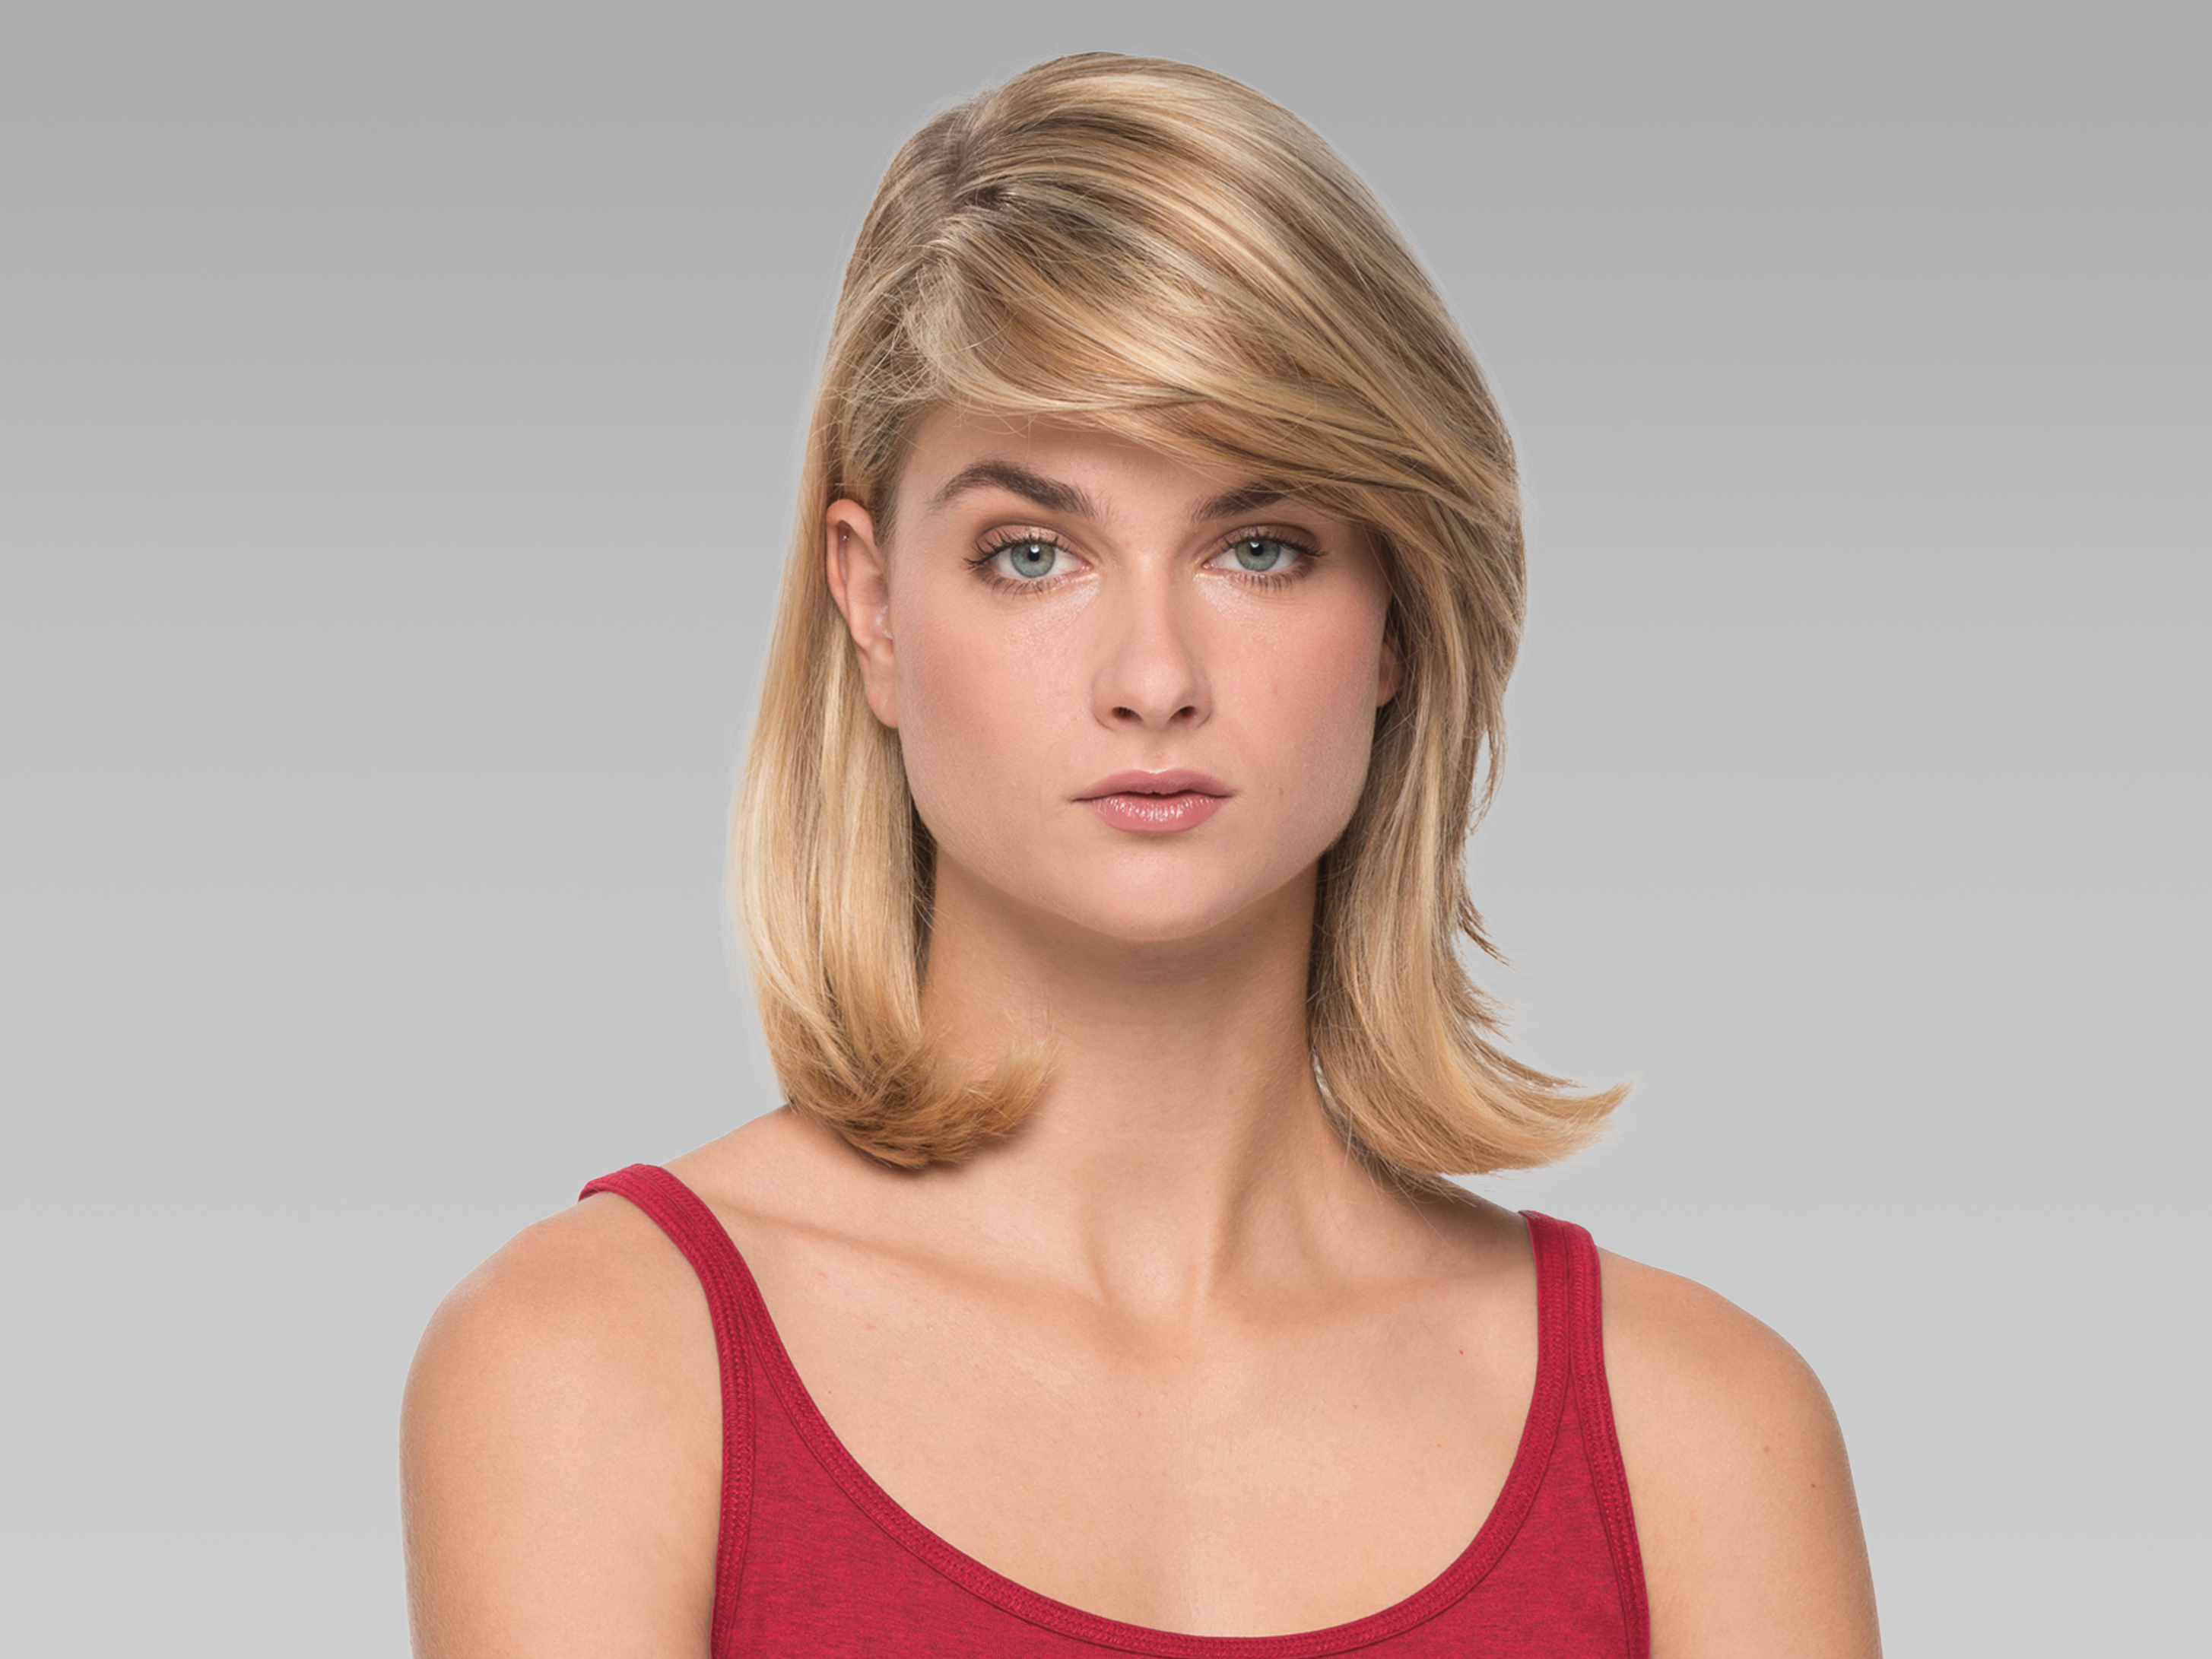 Supercuts Regarding Preferred Medium Hairstyles For Curvy Women (View 14 of 20)